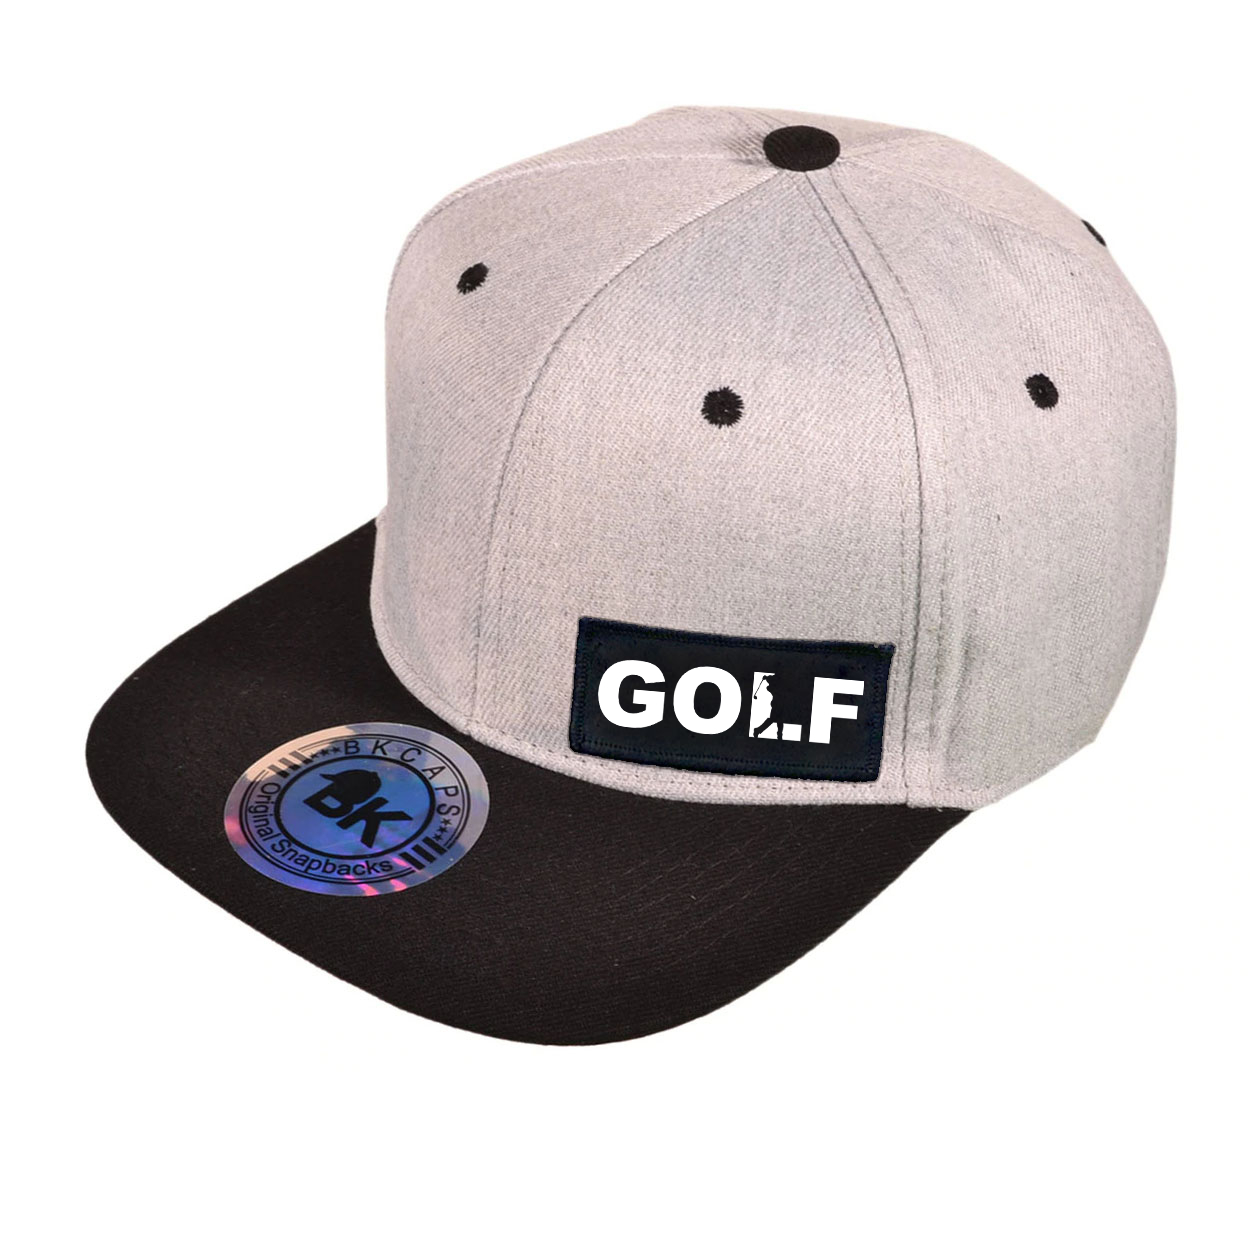 Golf Swing Logo Night Out Woven Patch Snapback Flat Brim Hat Heather Gray/Black (White Logo)